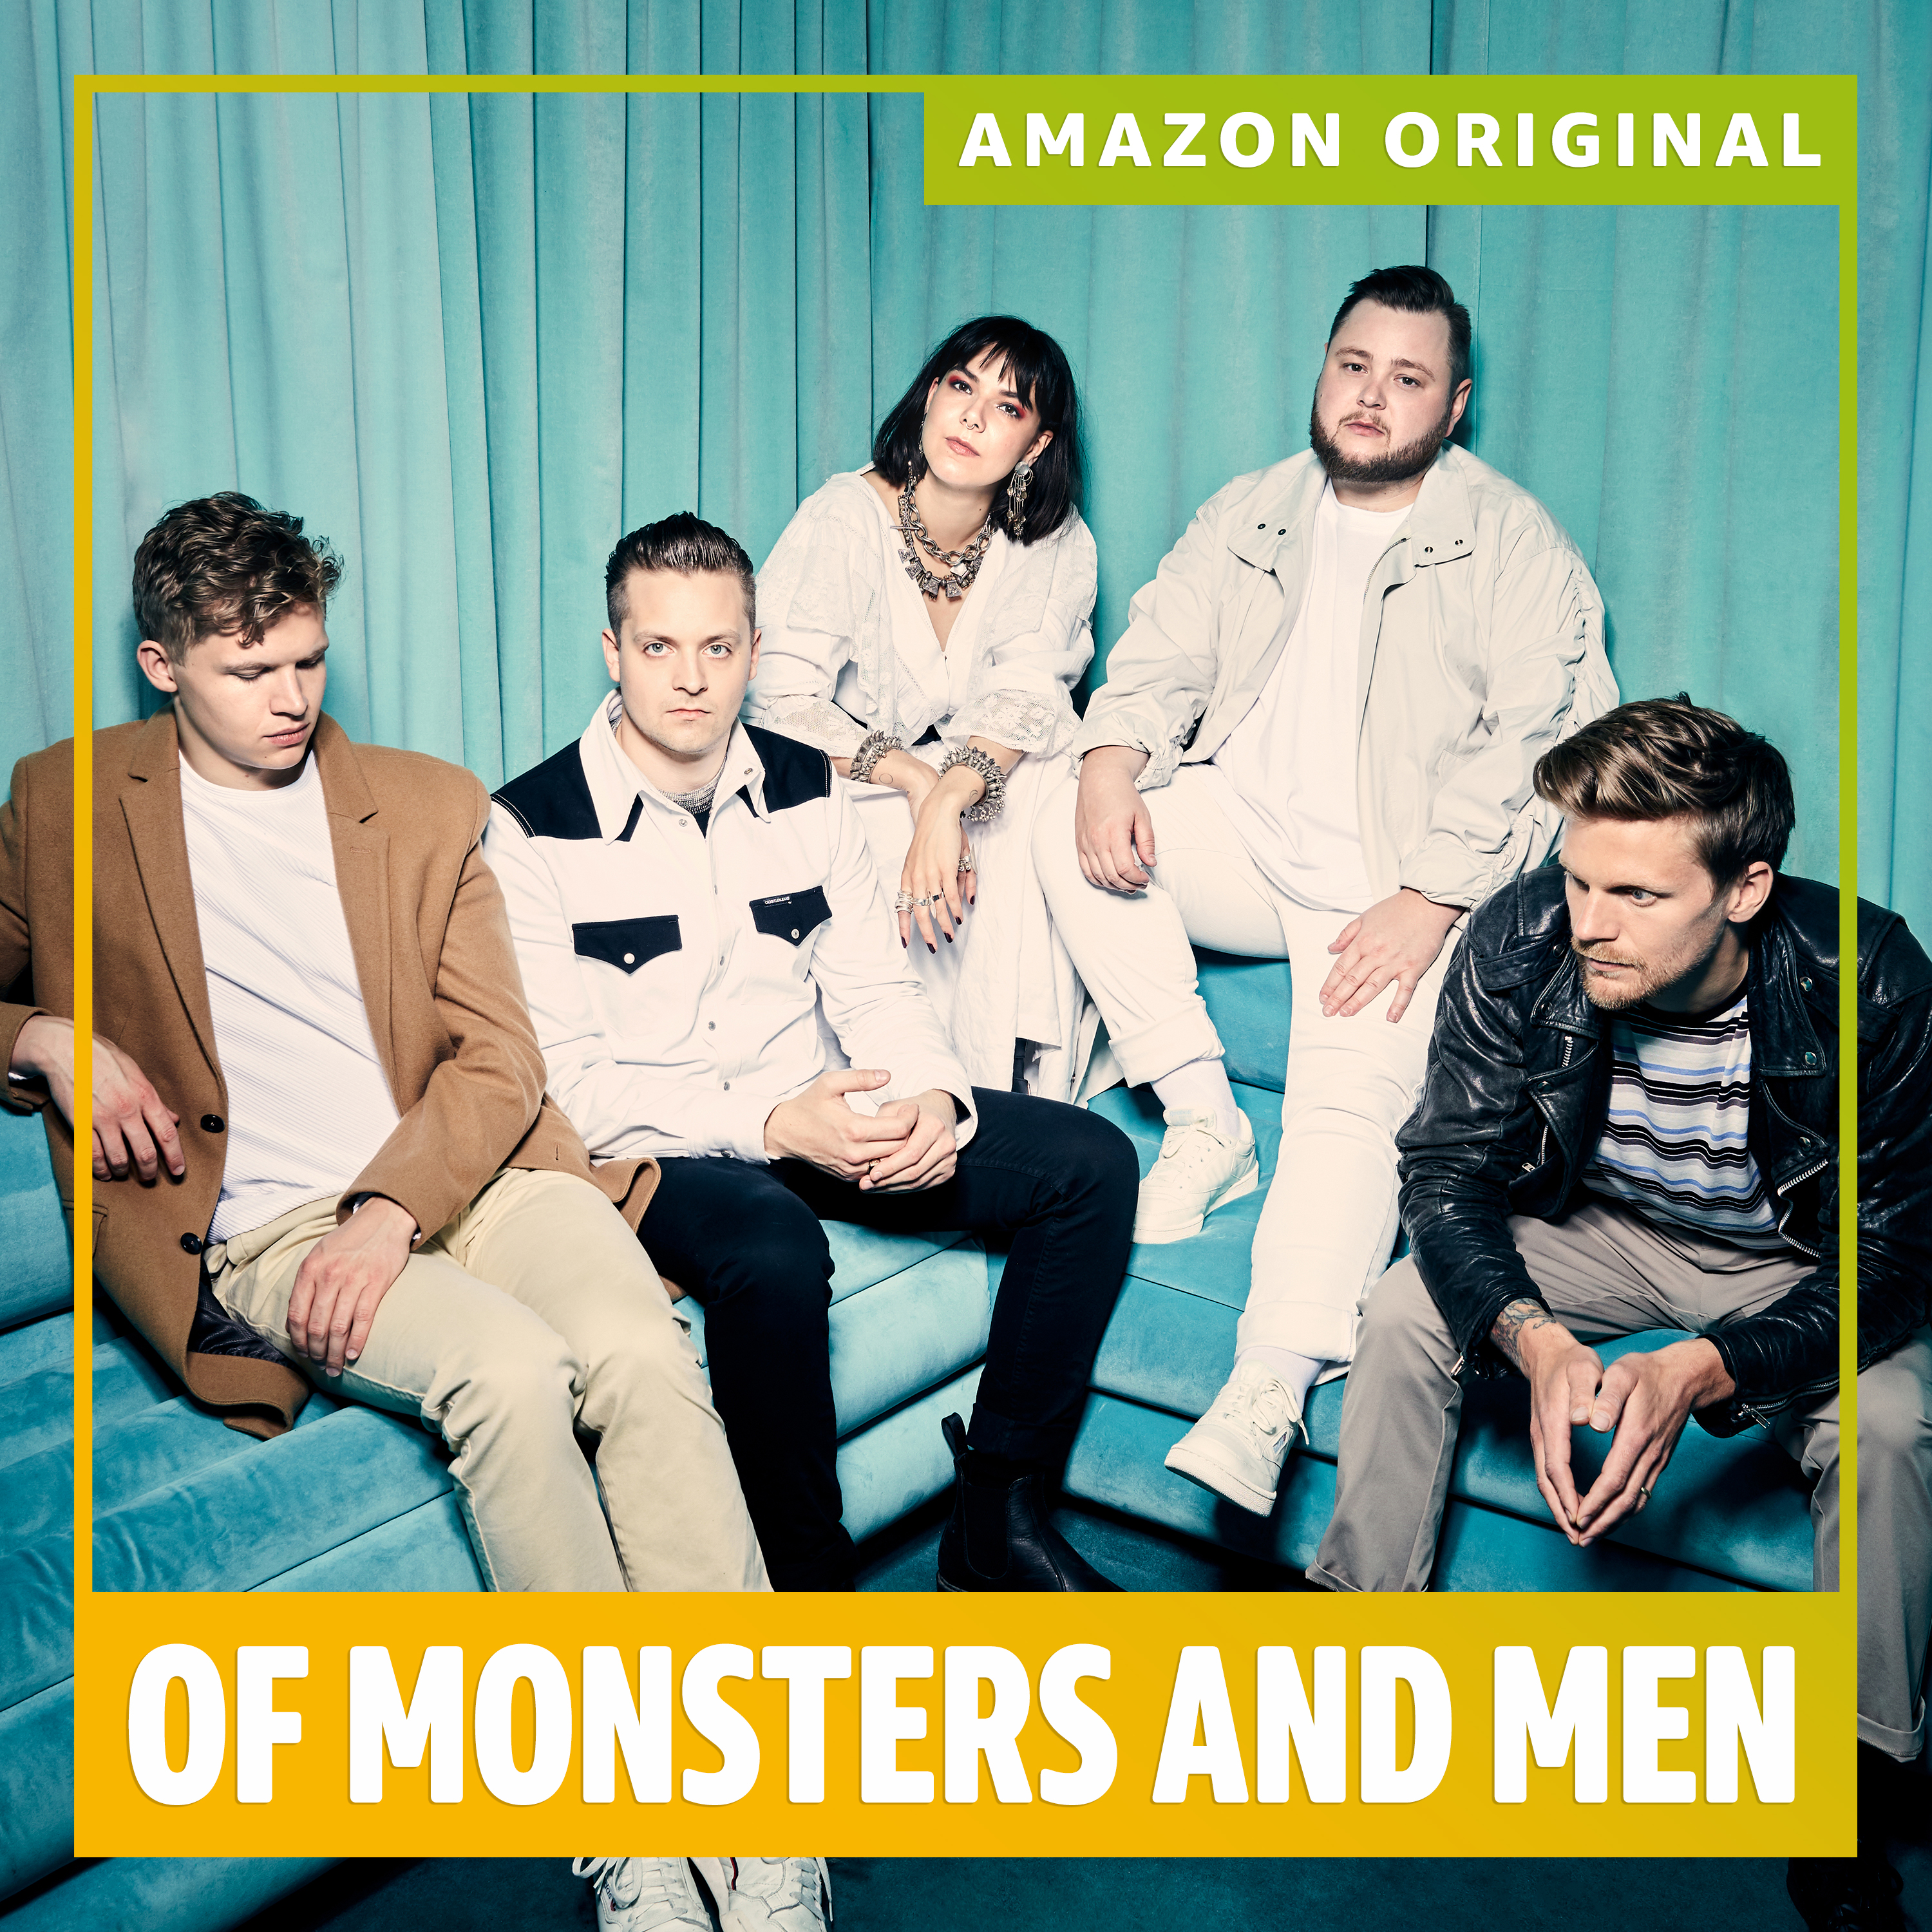 Of monsters and men, 360 MAGAZINE